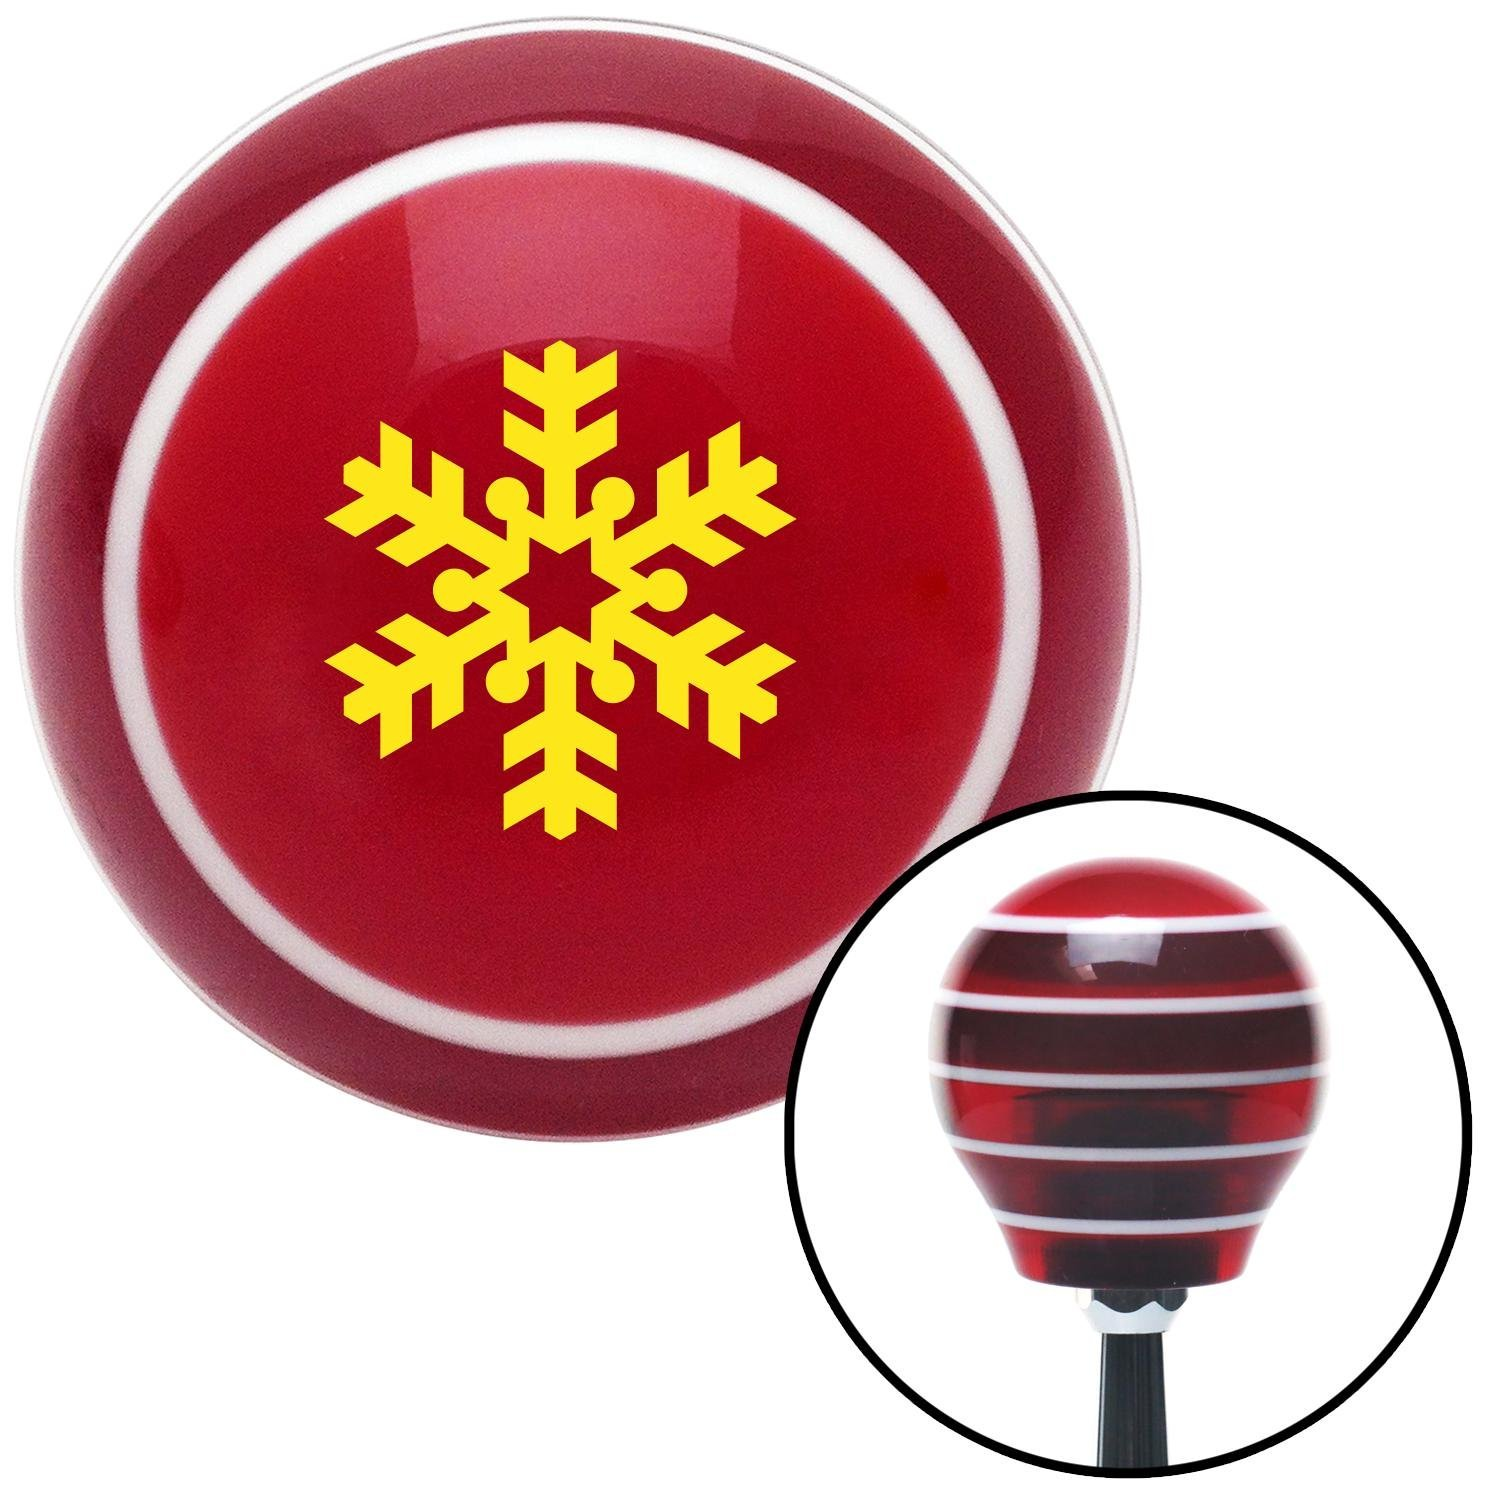 American Shifter 116437 Red Stripe Shift Knob with M16 x 1.5 Insert Yellow Snowflake Filled in